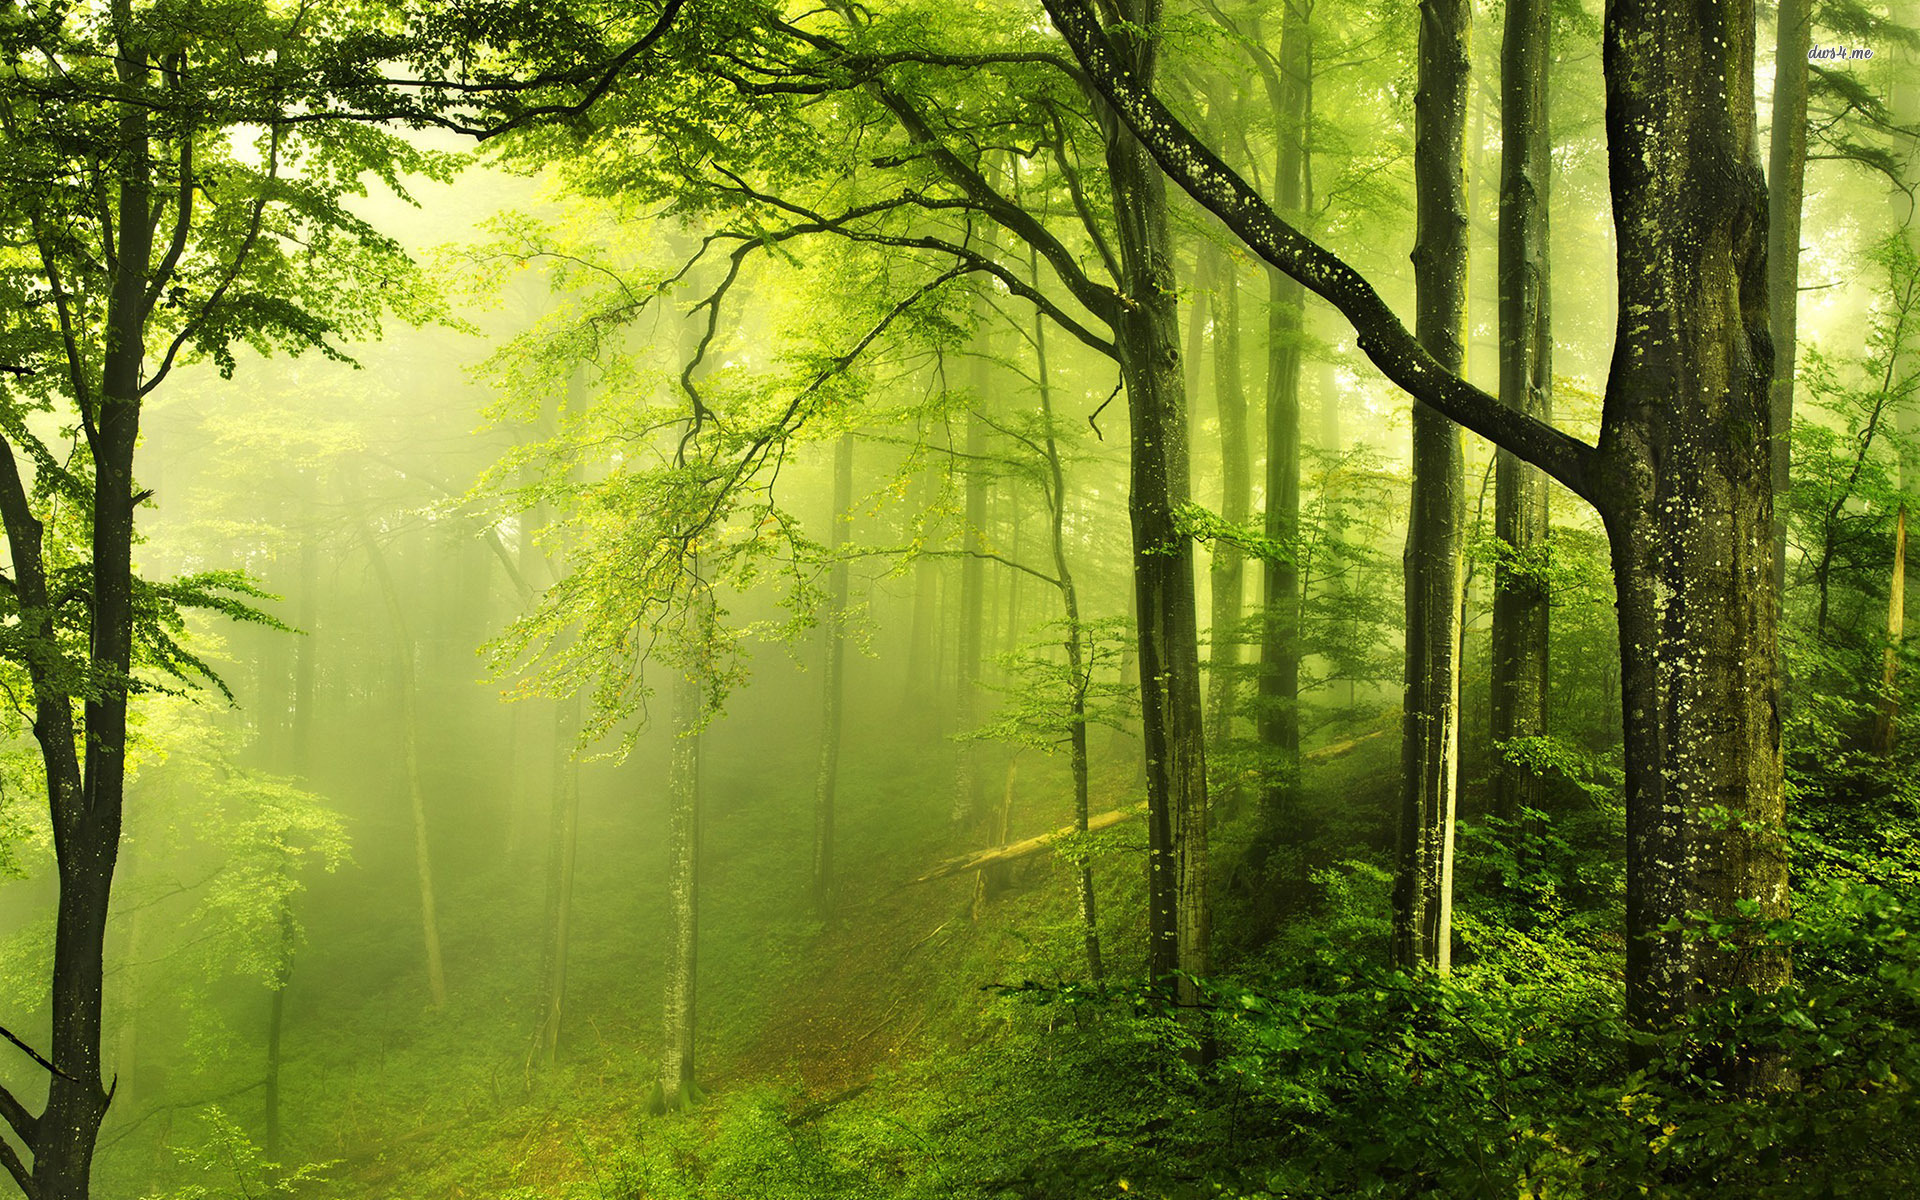 Beautiful Green Forest Nature Wallpaper Deskto #5336 ...